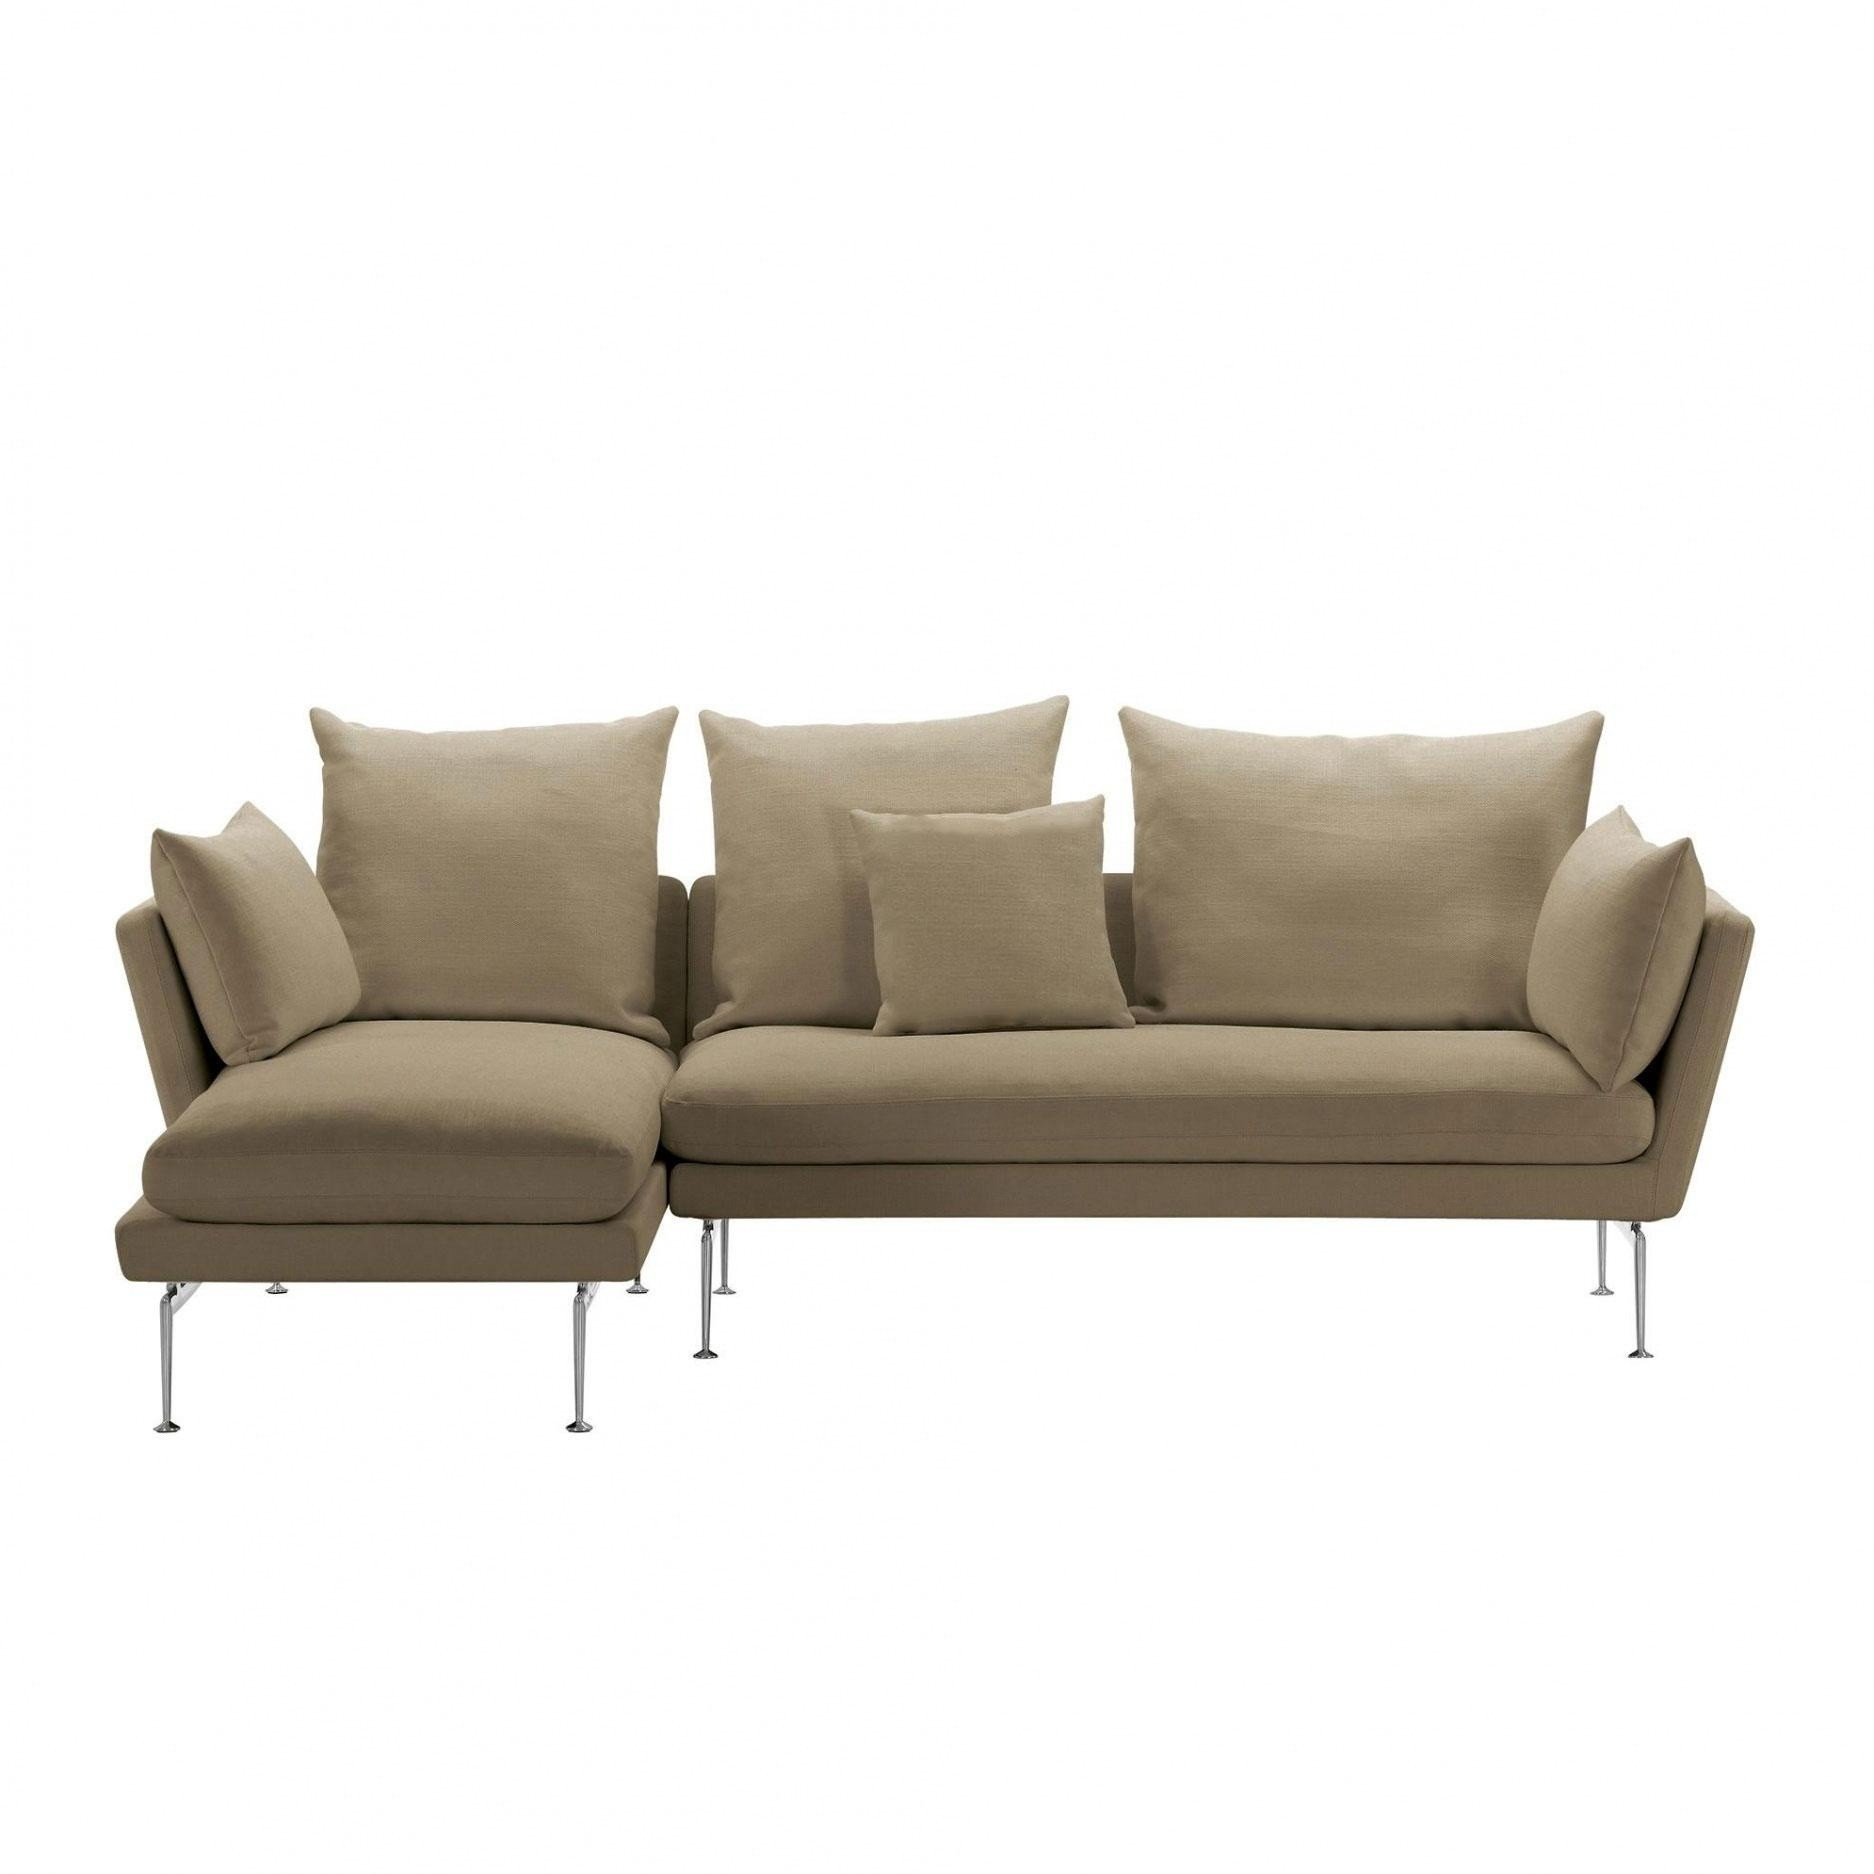 Vitra Suita Citterio Sofa with Chaise Longue